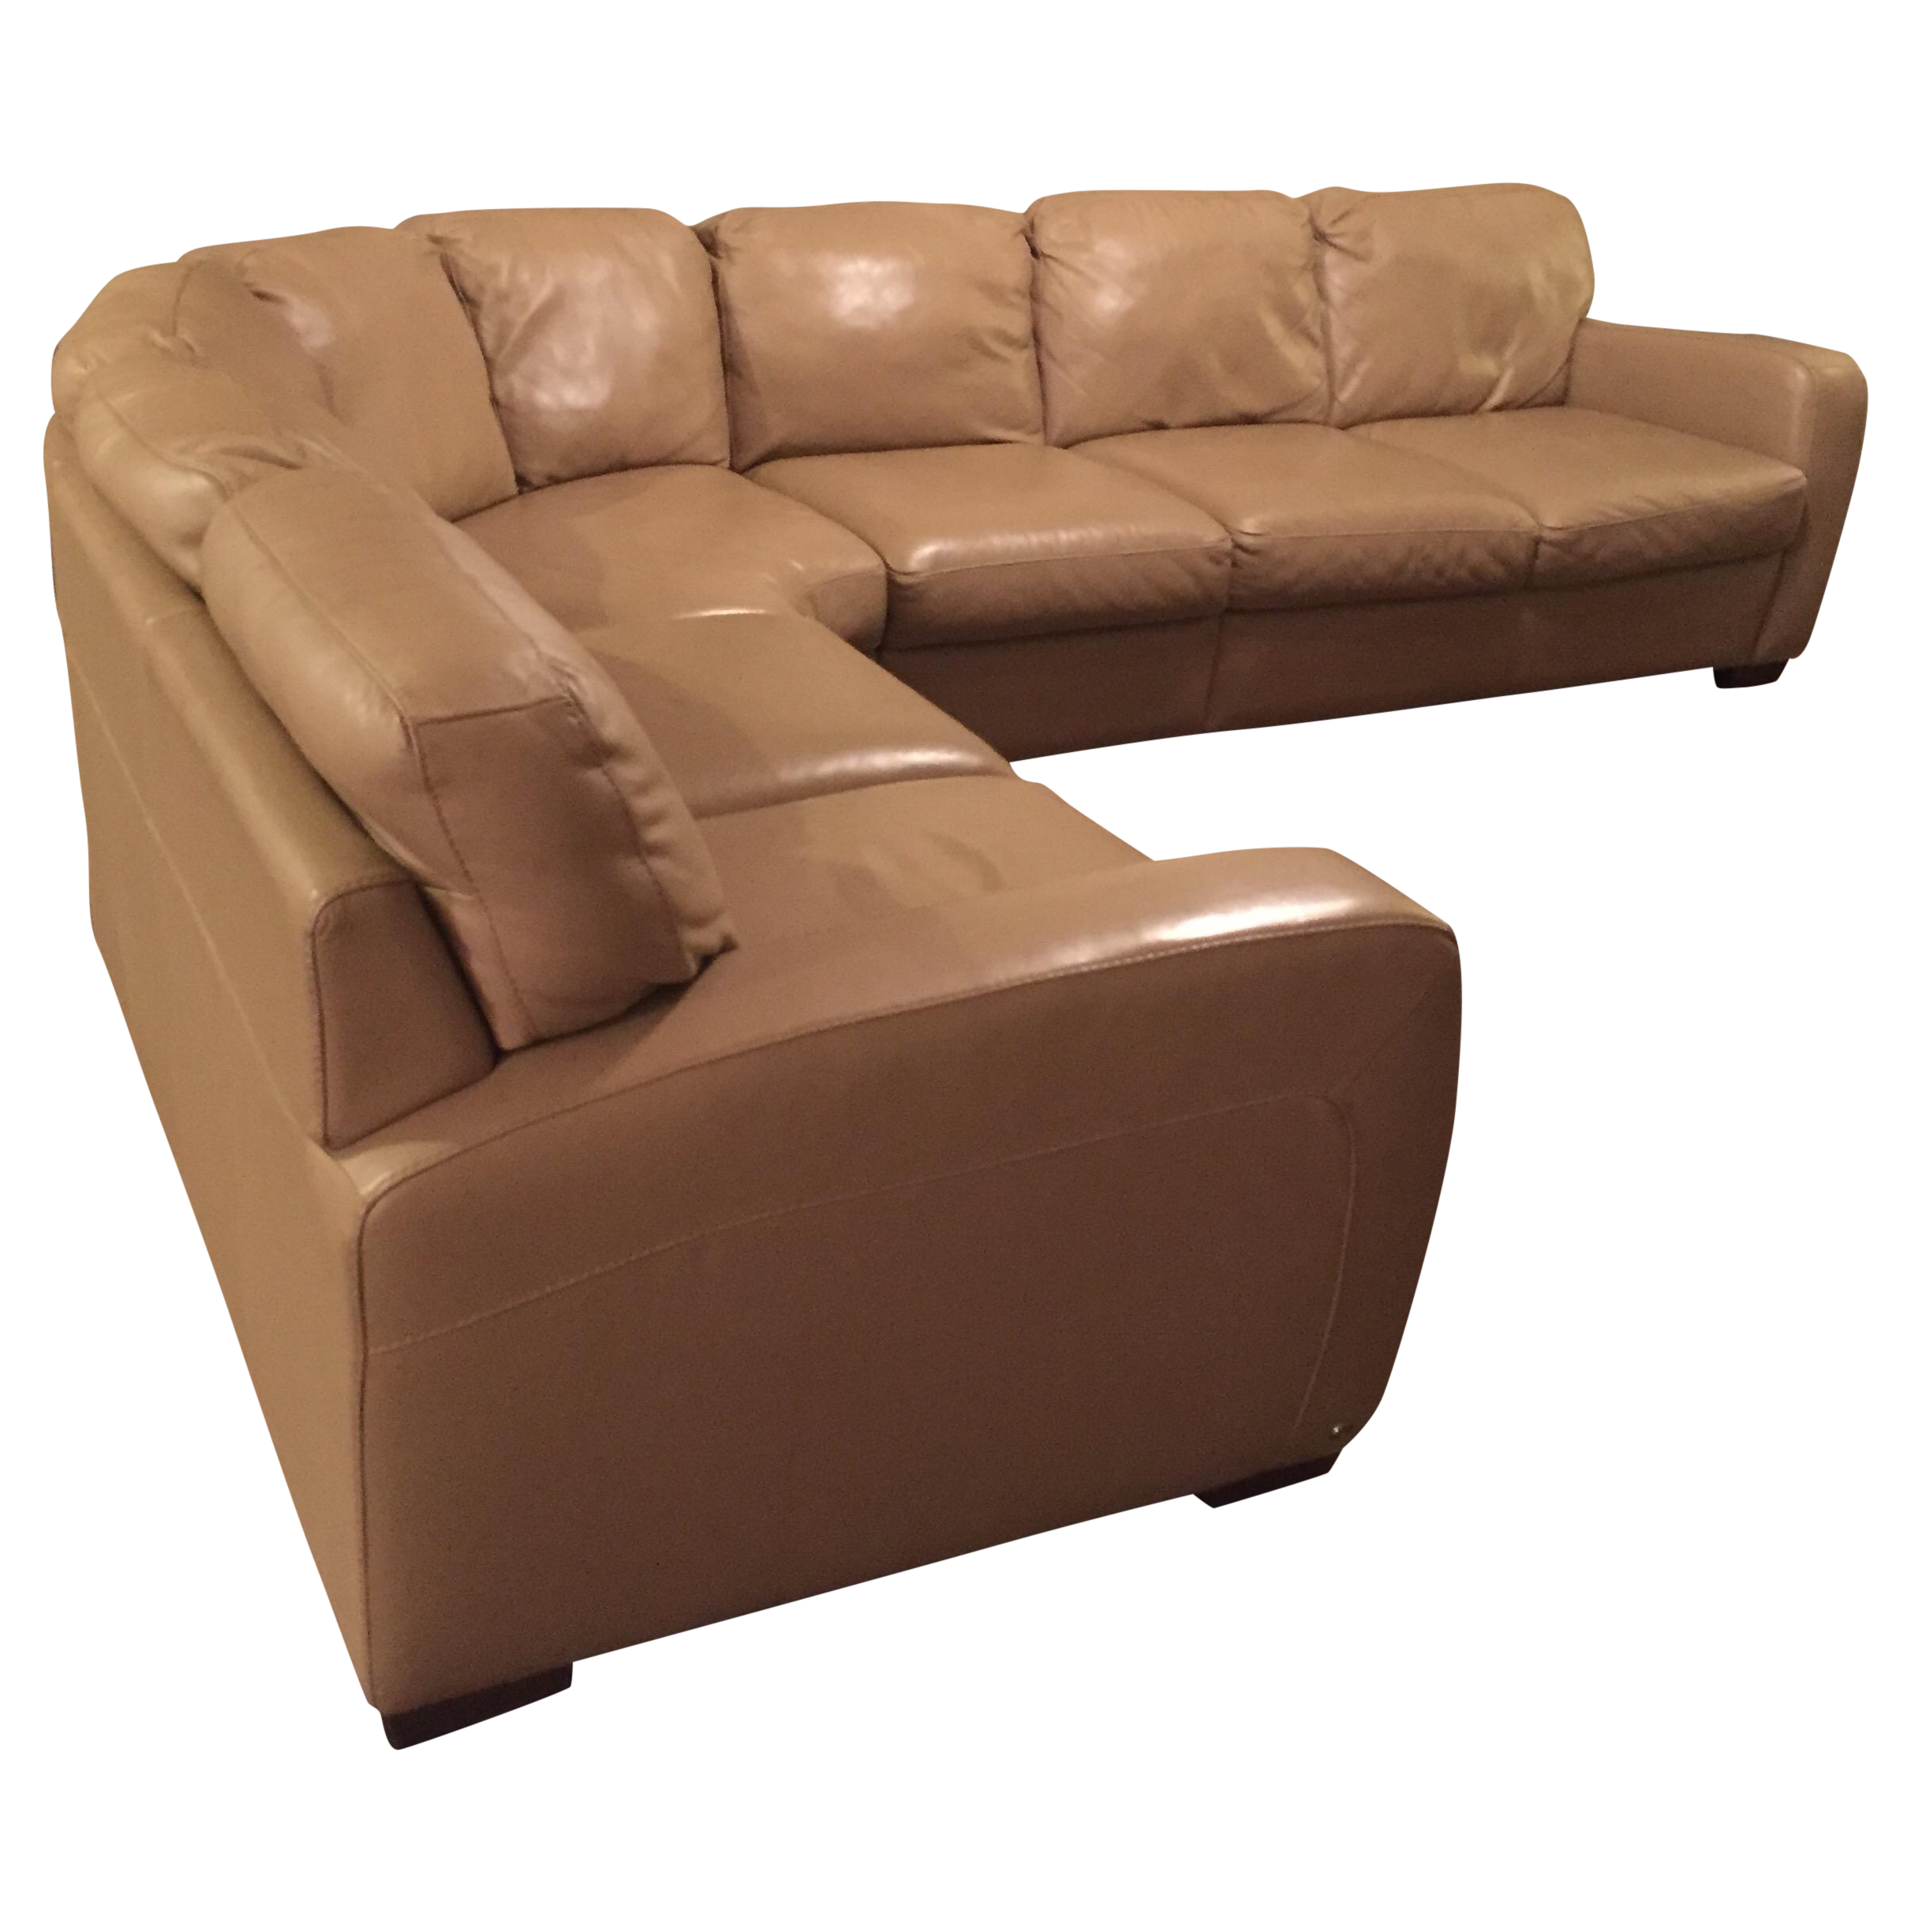 Natuzzi leather sectional sofa chairish for Sofas natuzzi ofertas